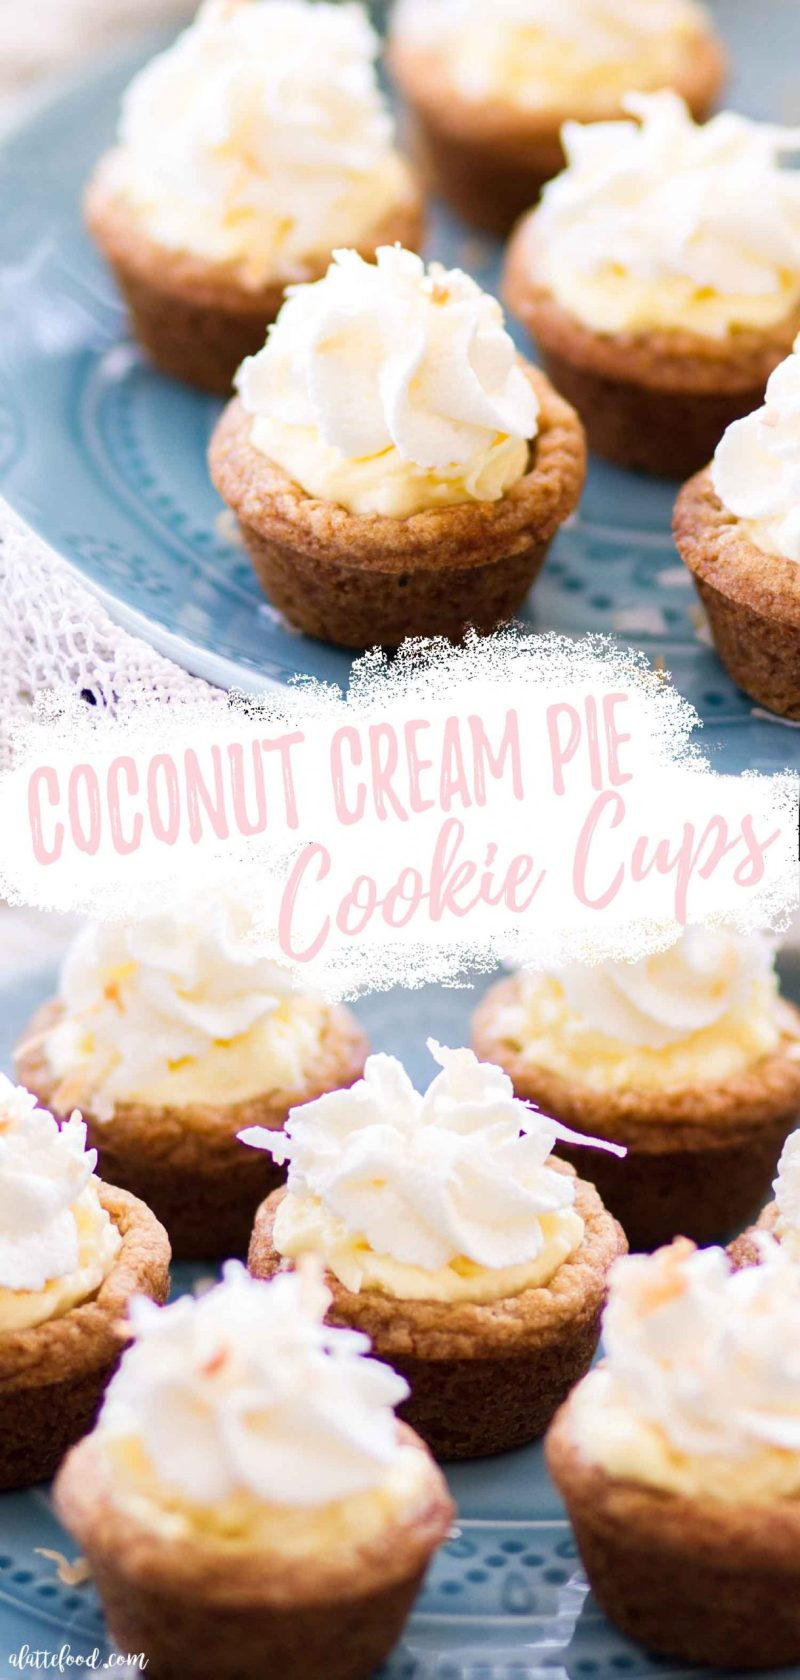 easy coconut cream pie cookie cups on blue dessert plate collage